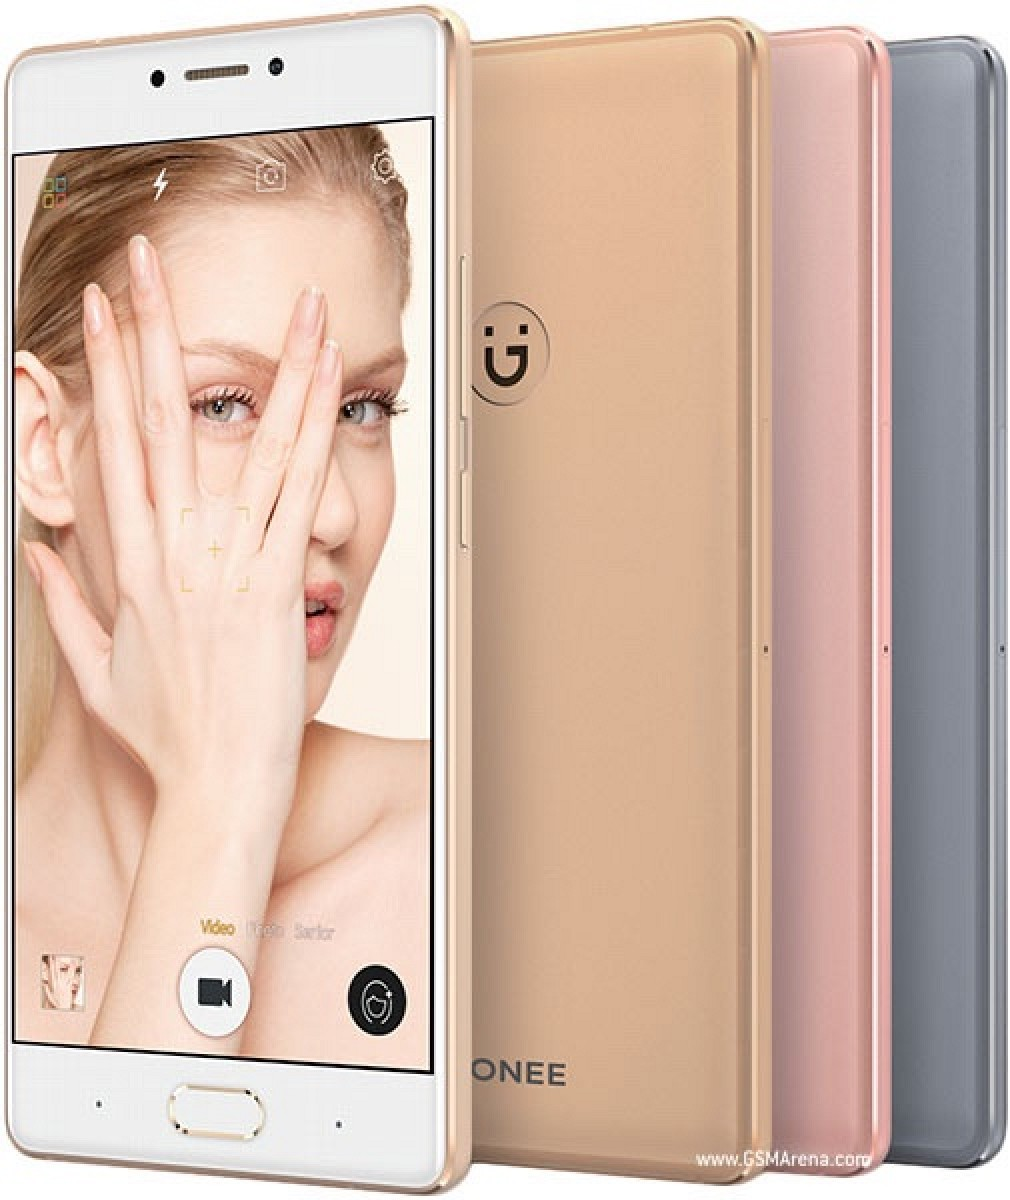 Copycat Android Phone From Gionee Includes 3D Touch Quick